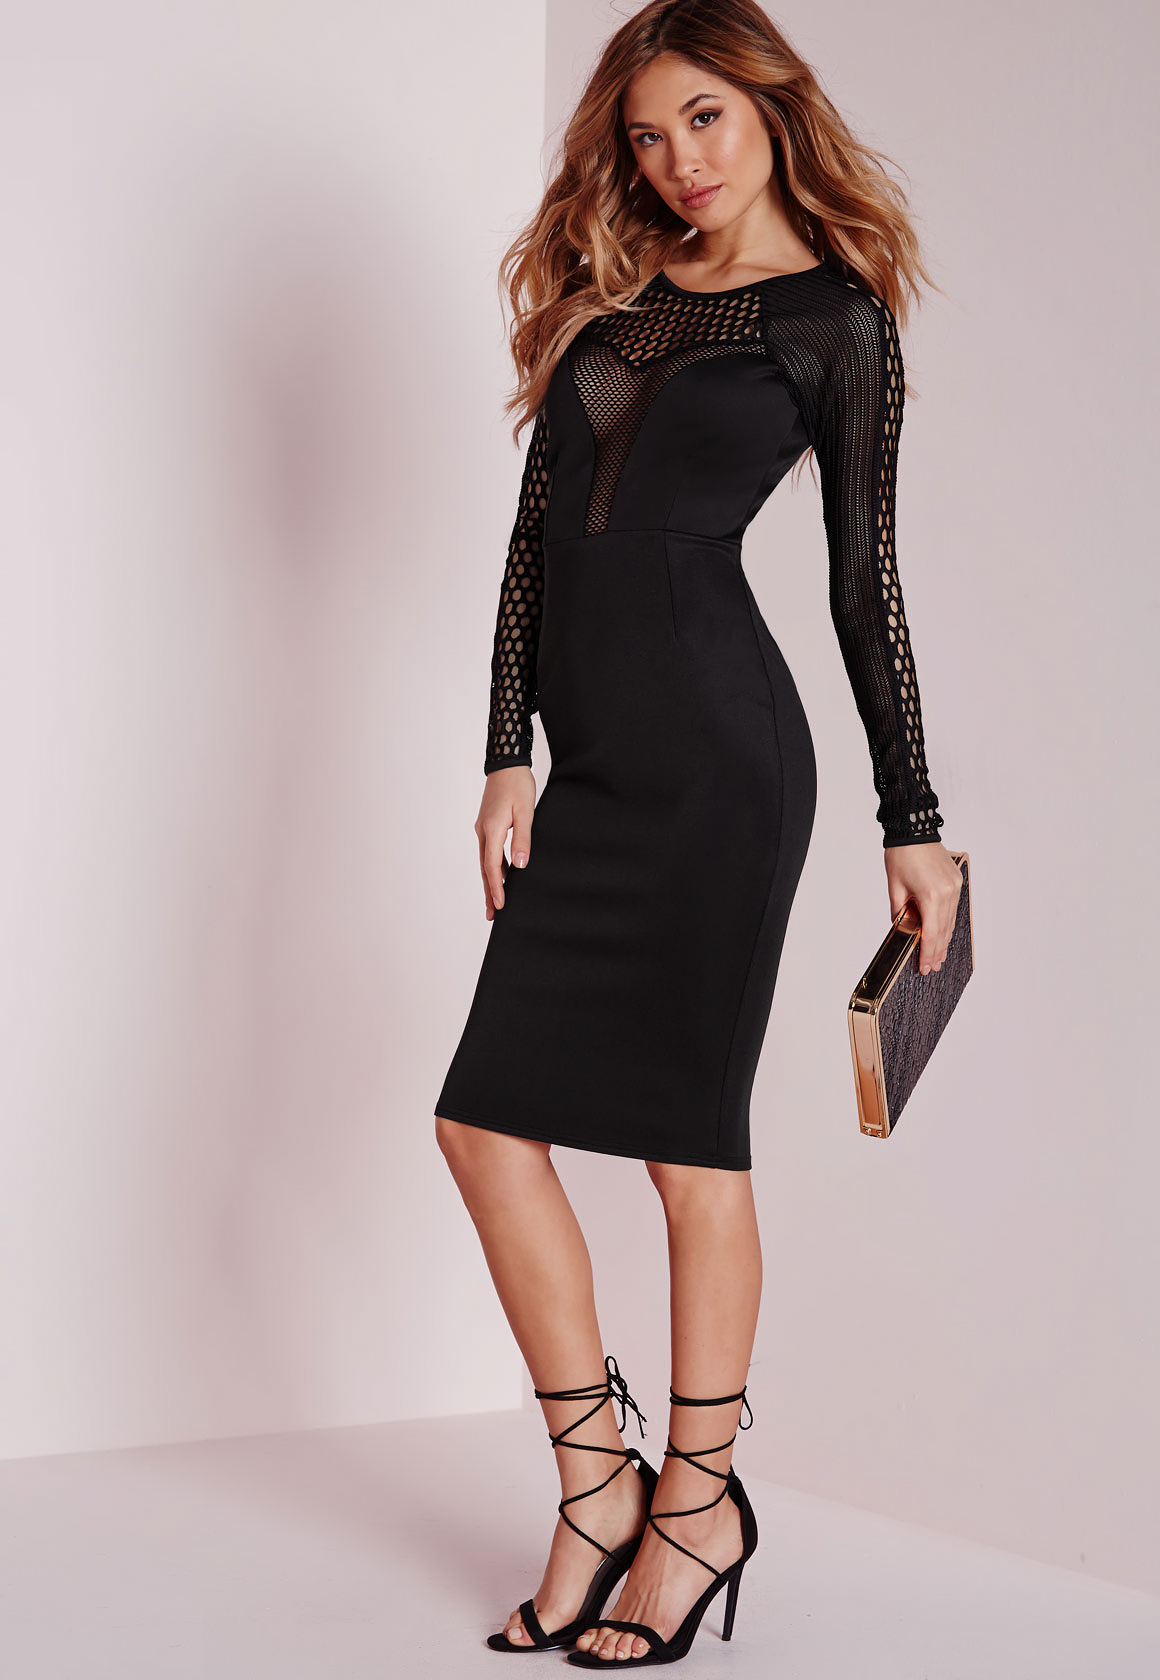 Lyst - Missguided Mesh Insert Long Sleeve Midi Dress Black ...